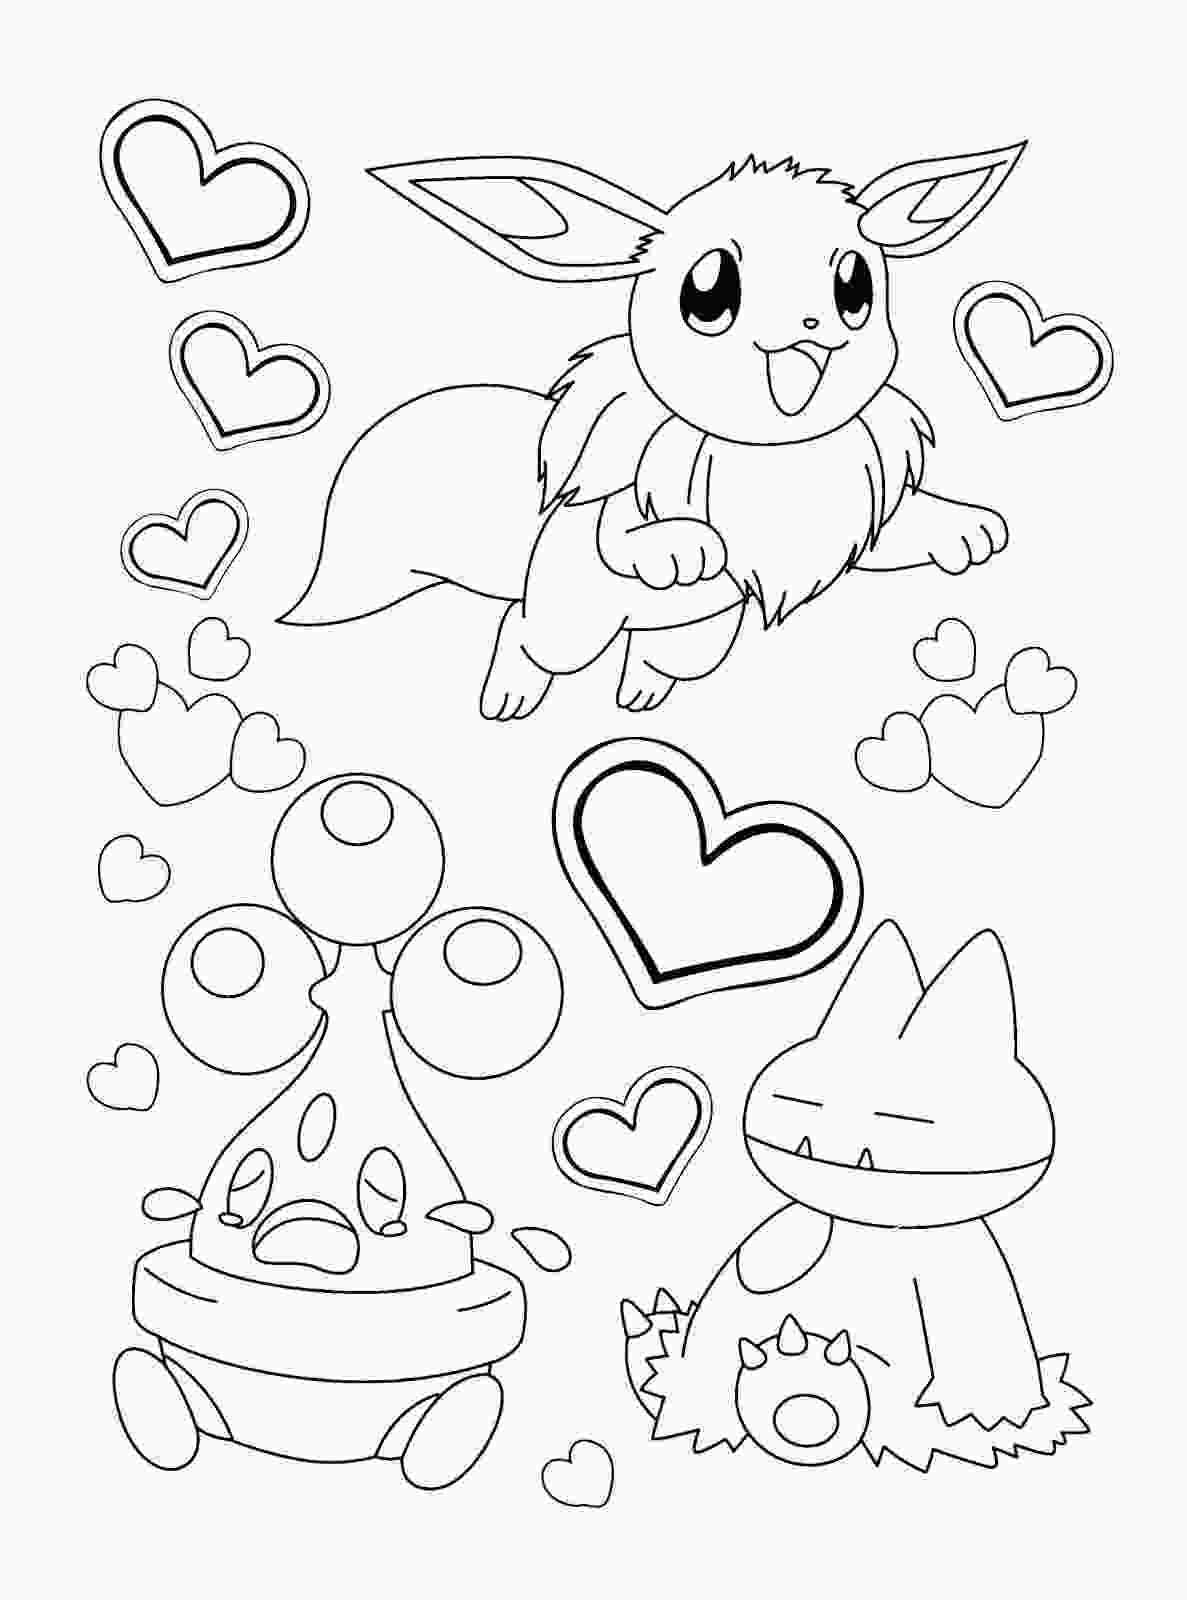 pokemon card coloring pages best pokemon cards legendary ex full art coloring pages